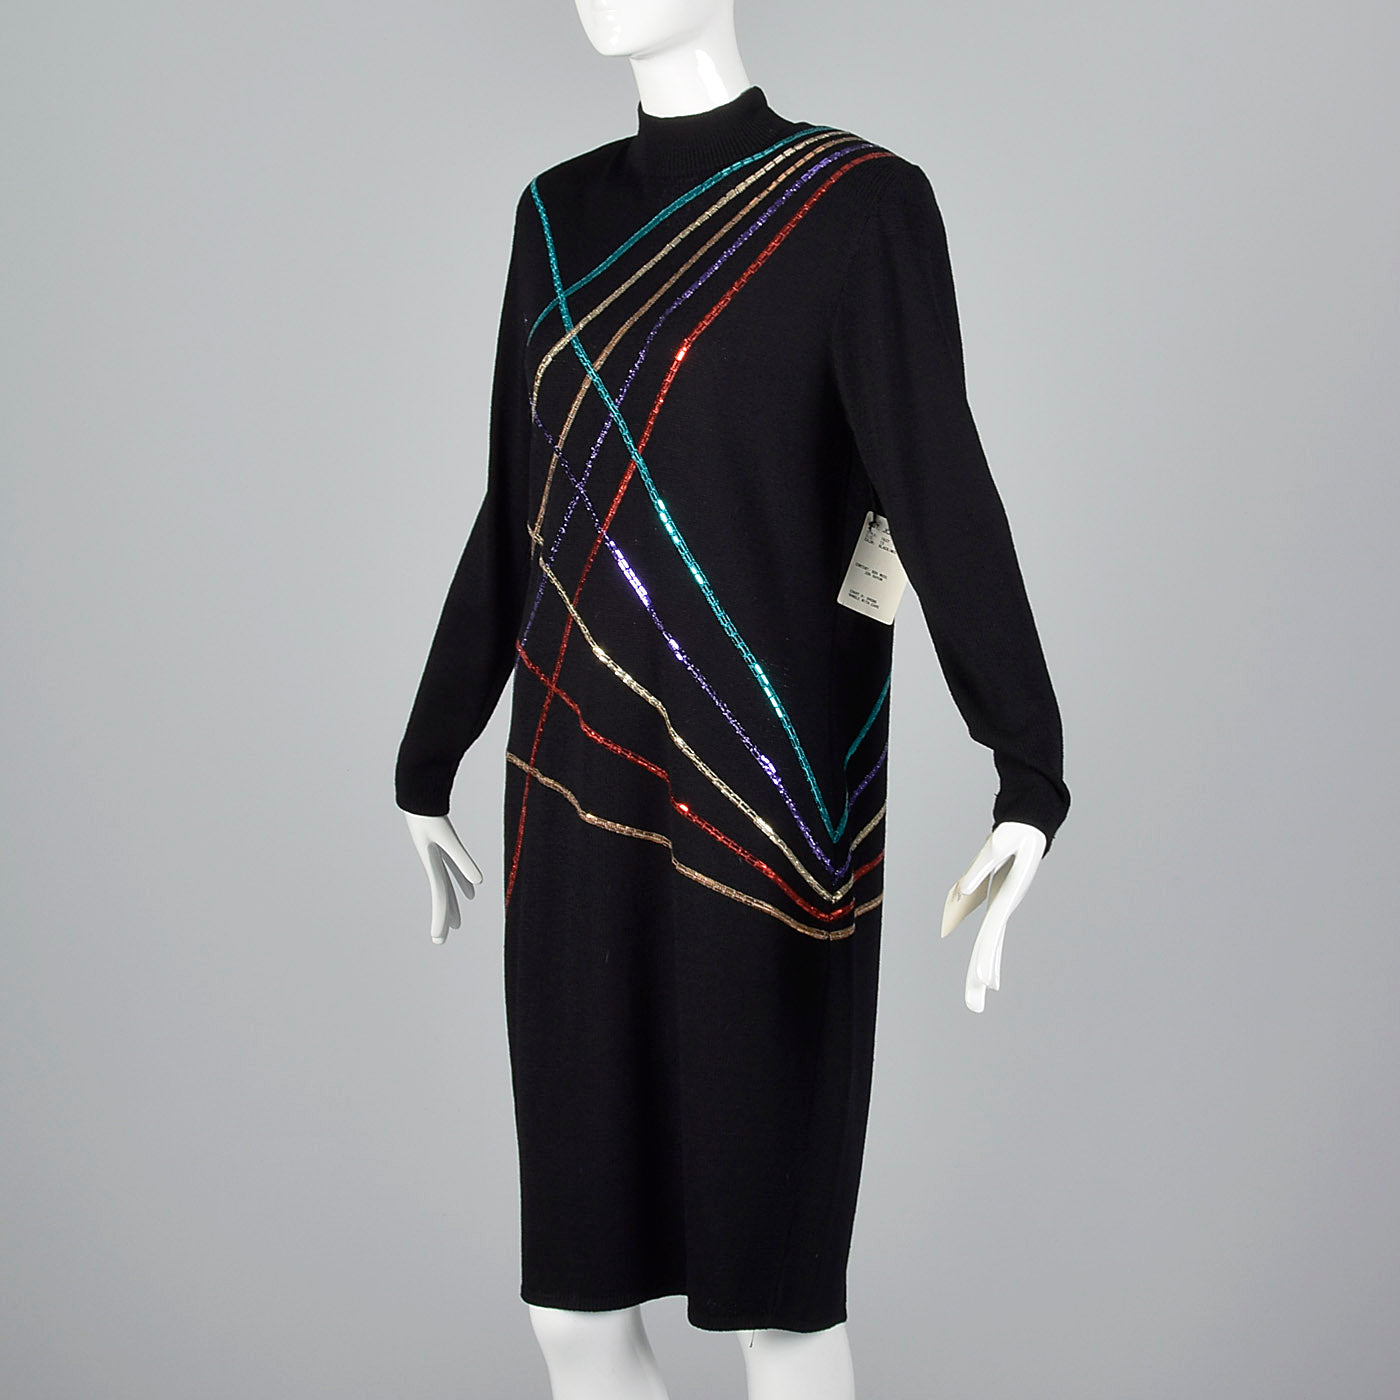 1980s St John Knit Sweater Dress with Sequin Stripes